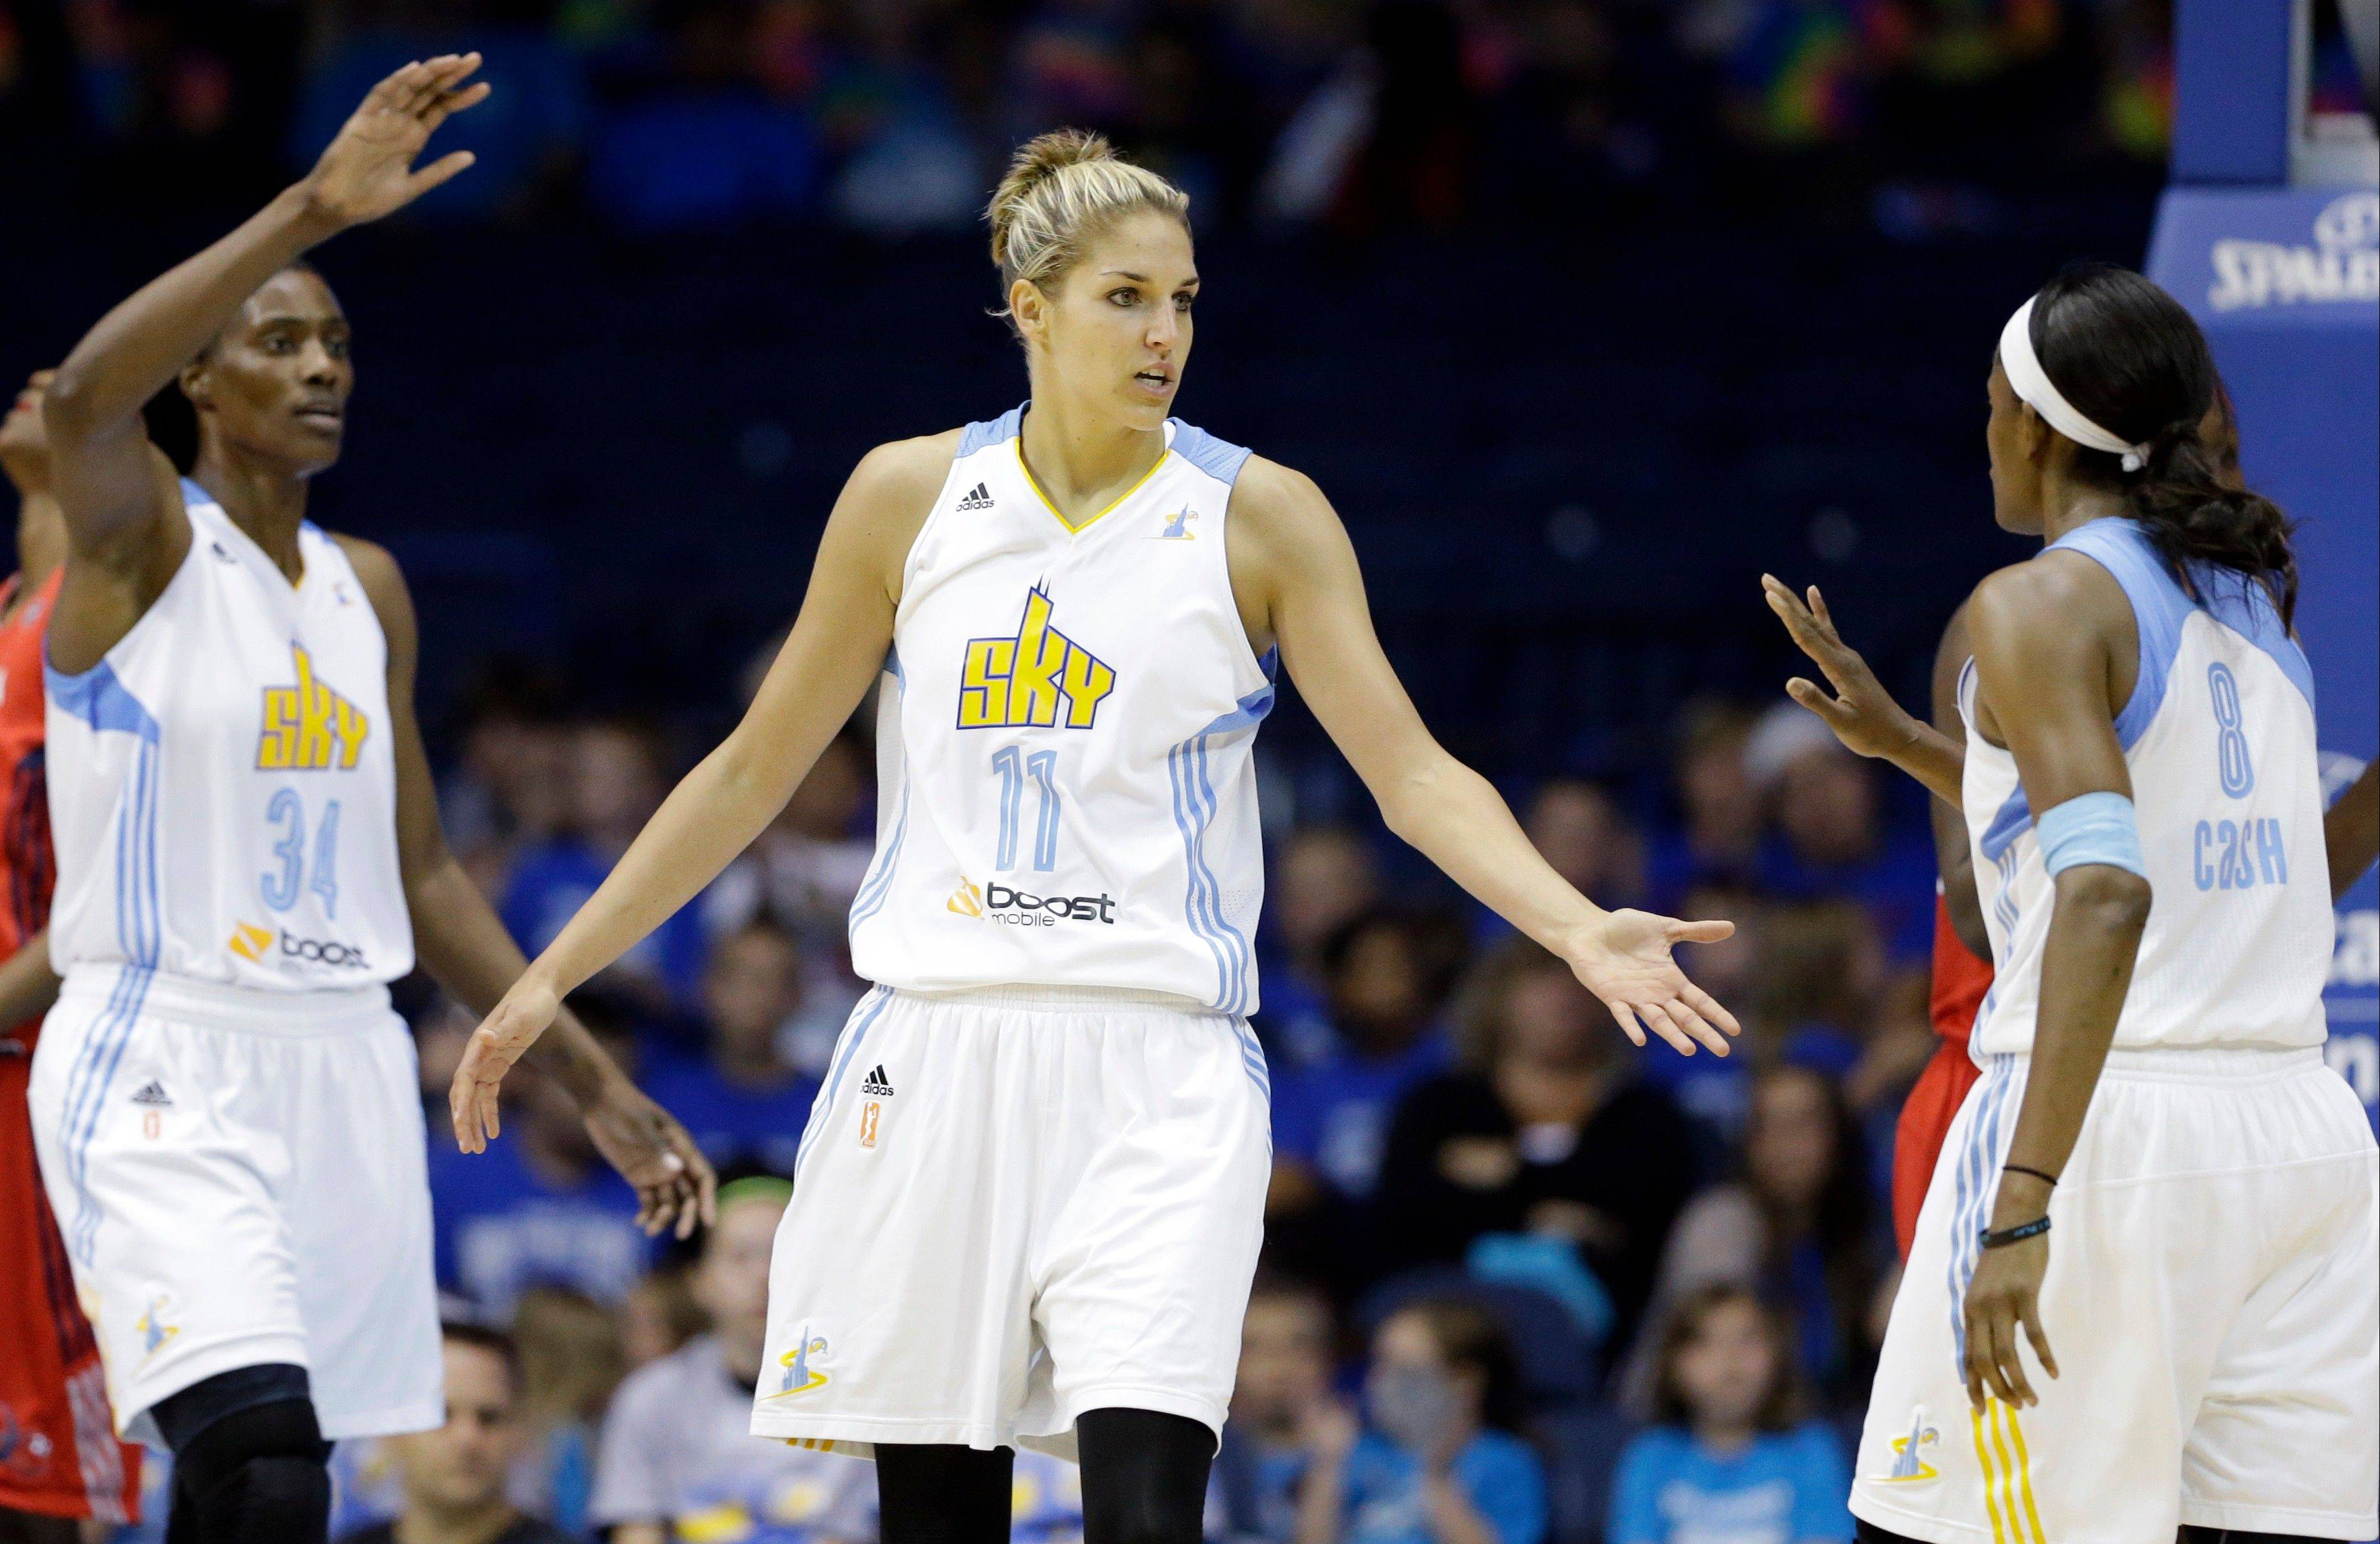 Sky forward Elena Delle Donne, center, celebrates with center Sylvia Fowles, left, and forward Swin Cash against the Washington Mystics last week. Delle Donne, a rookie, led balloting for the WNBA all-star game.